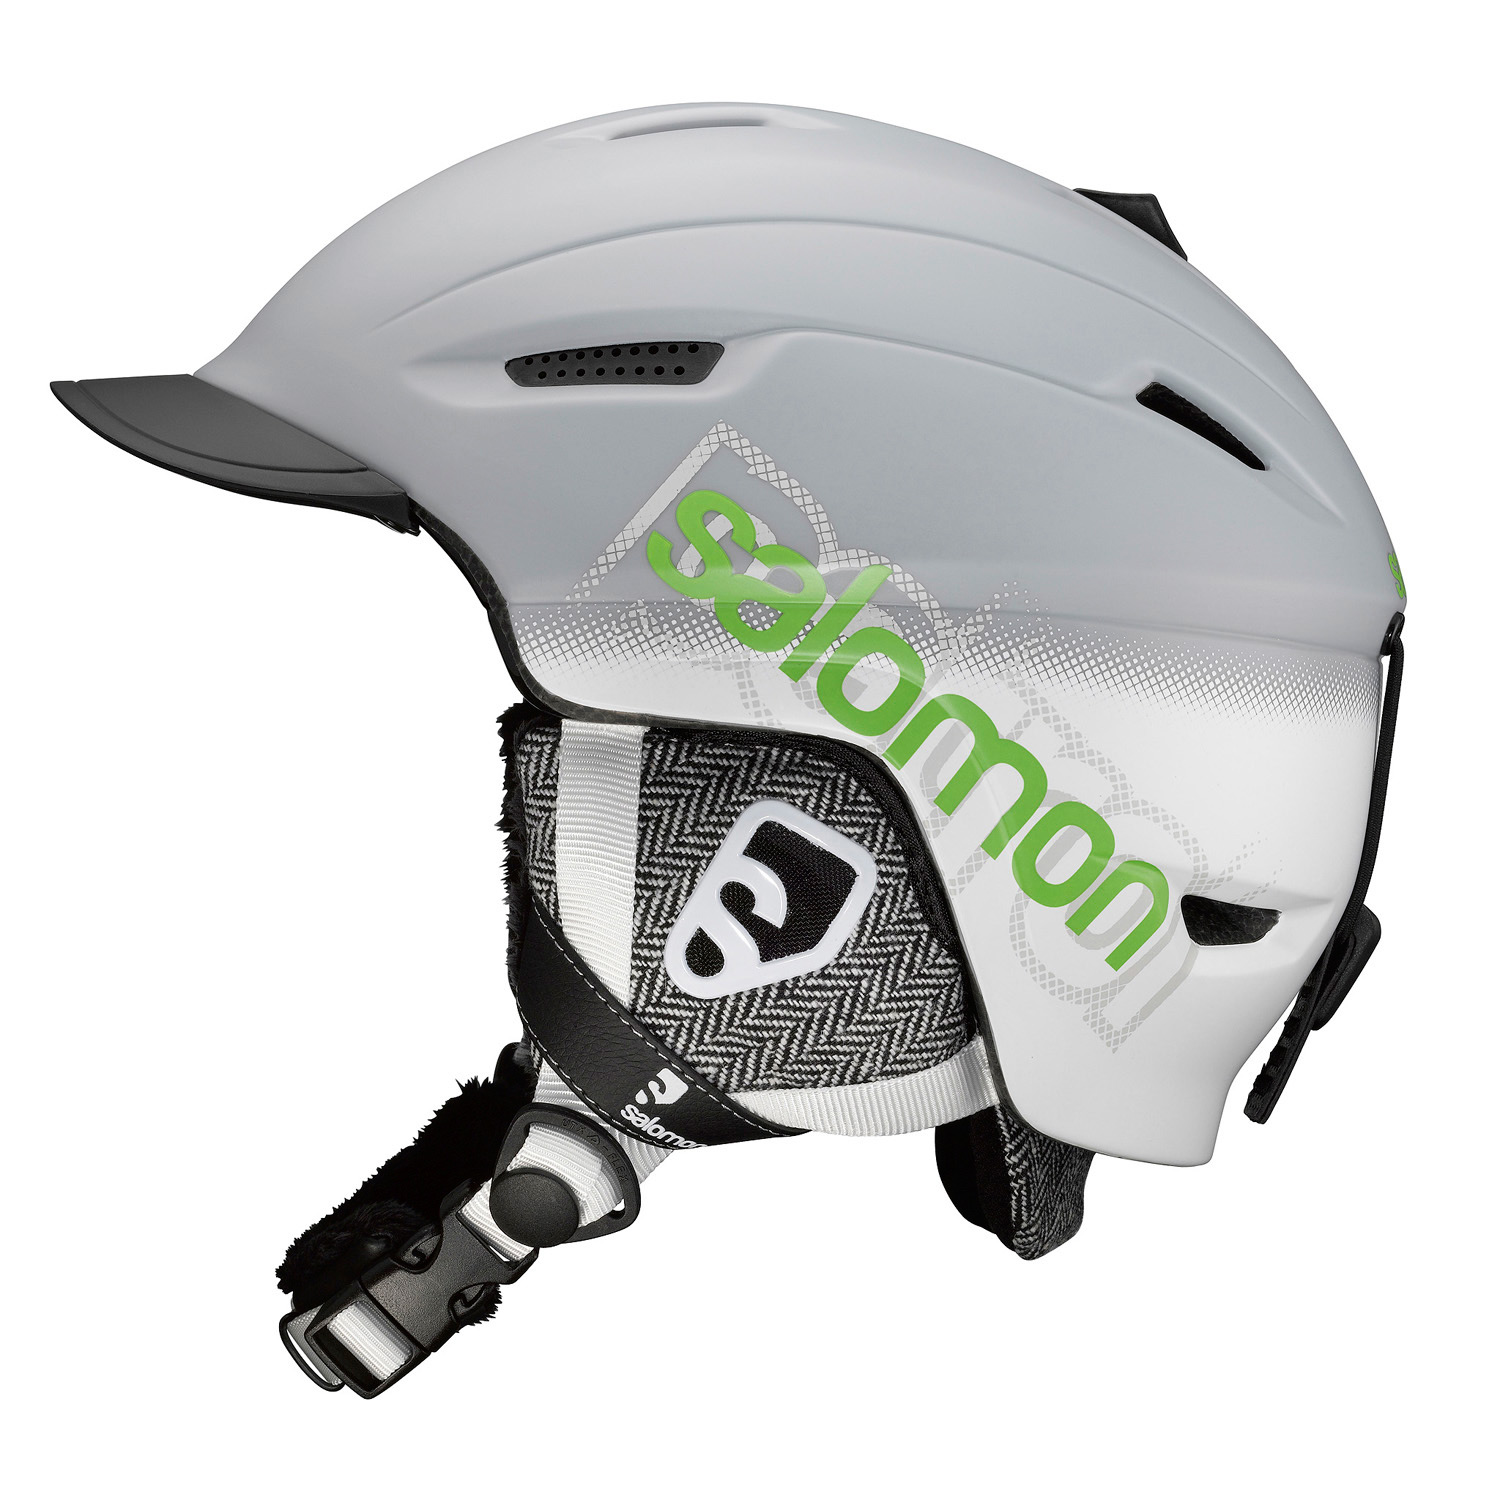 Ski Key Features of the Salomon Patrol Ski Helmet: Half shell In-mold shell + EPS liner Beanie convertible liner Removable/washable Active ventilation Removable earpads Faux fur Removable visor - $89.95